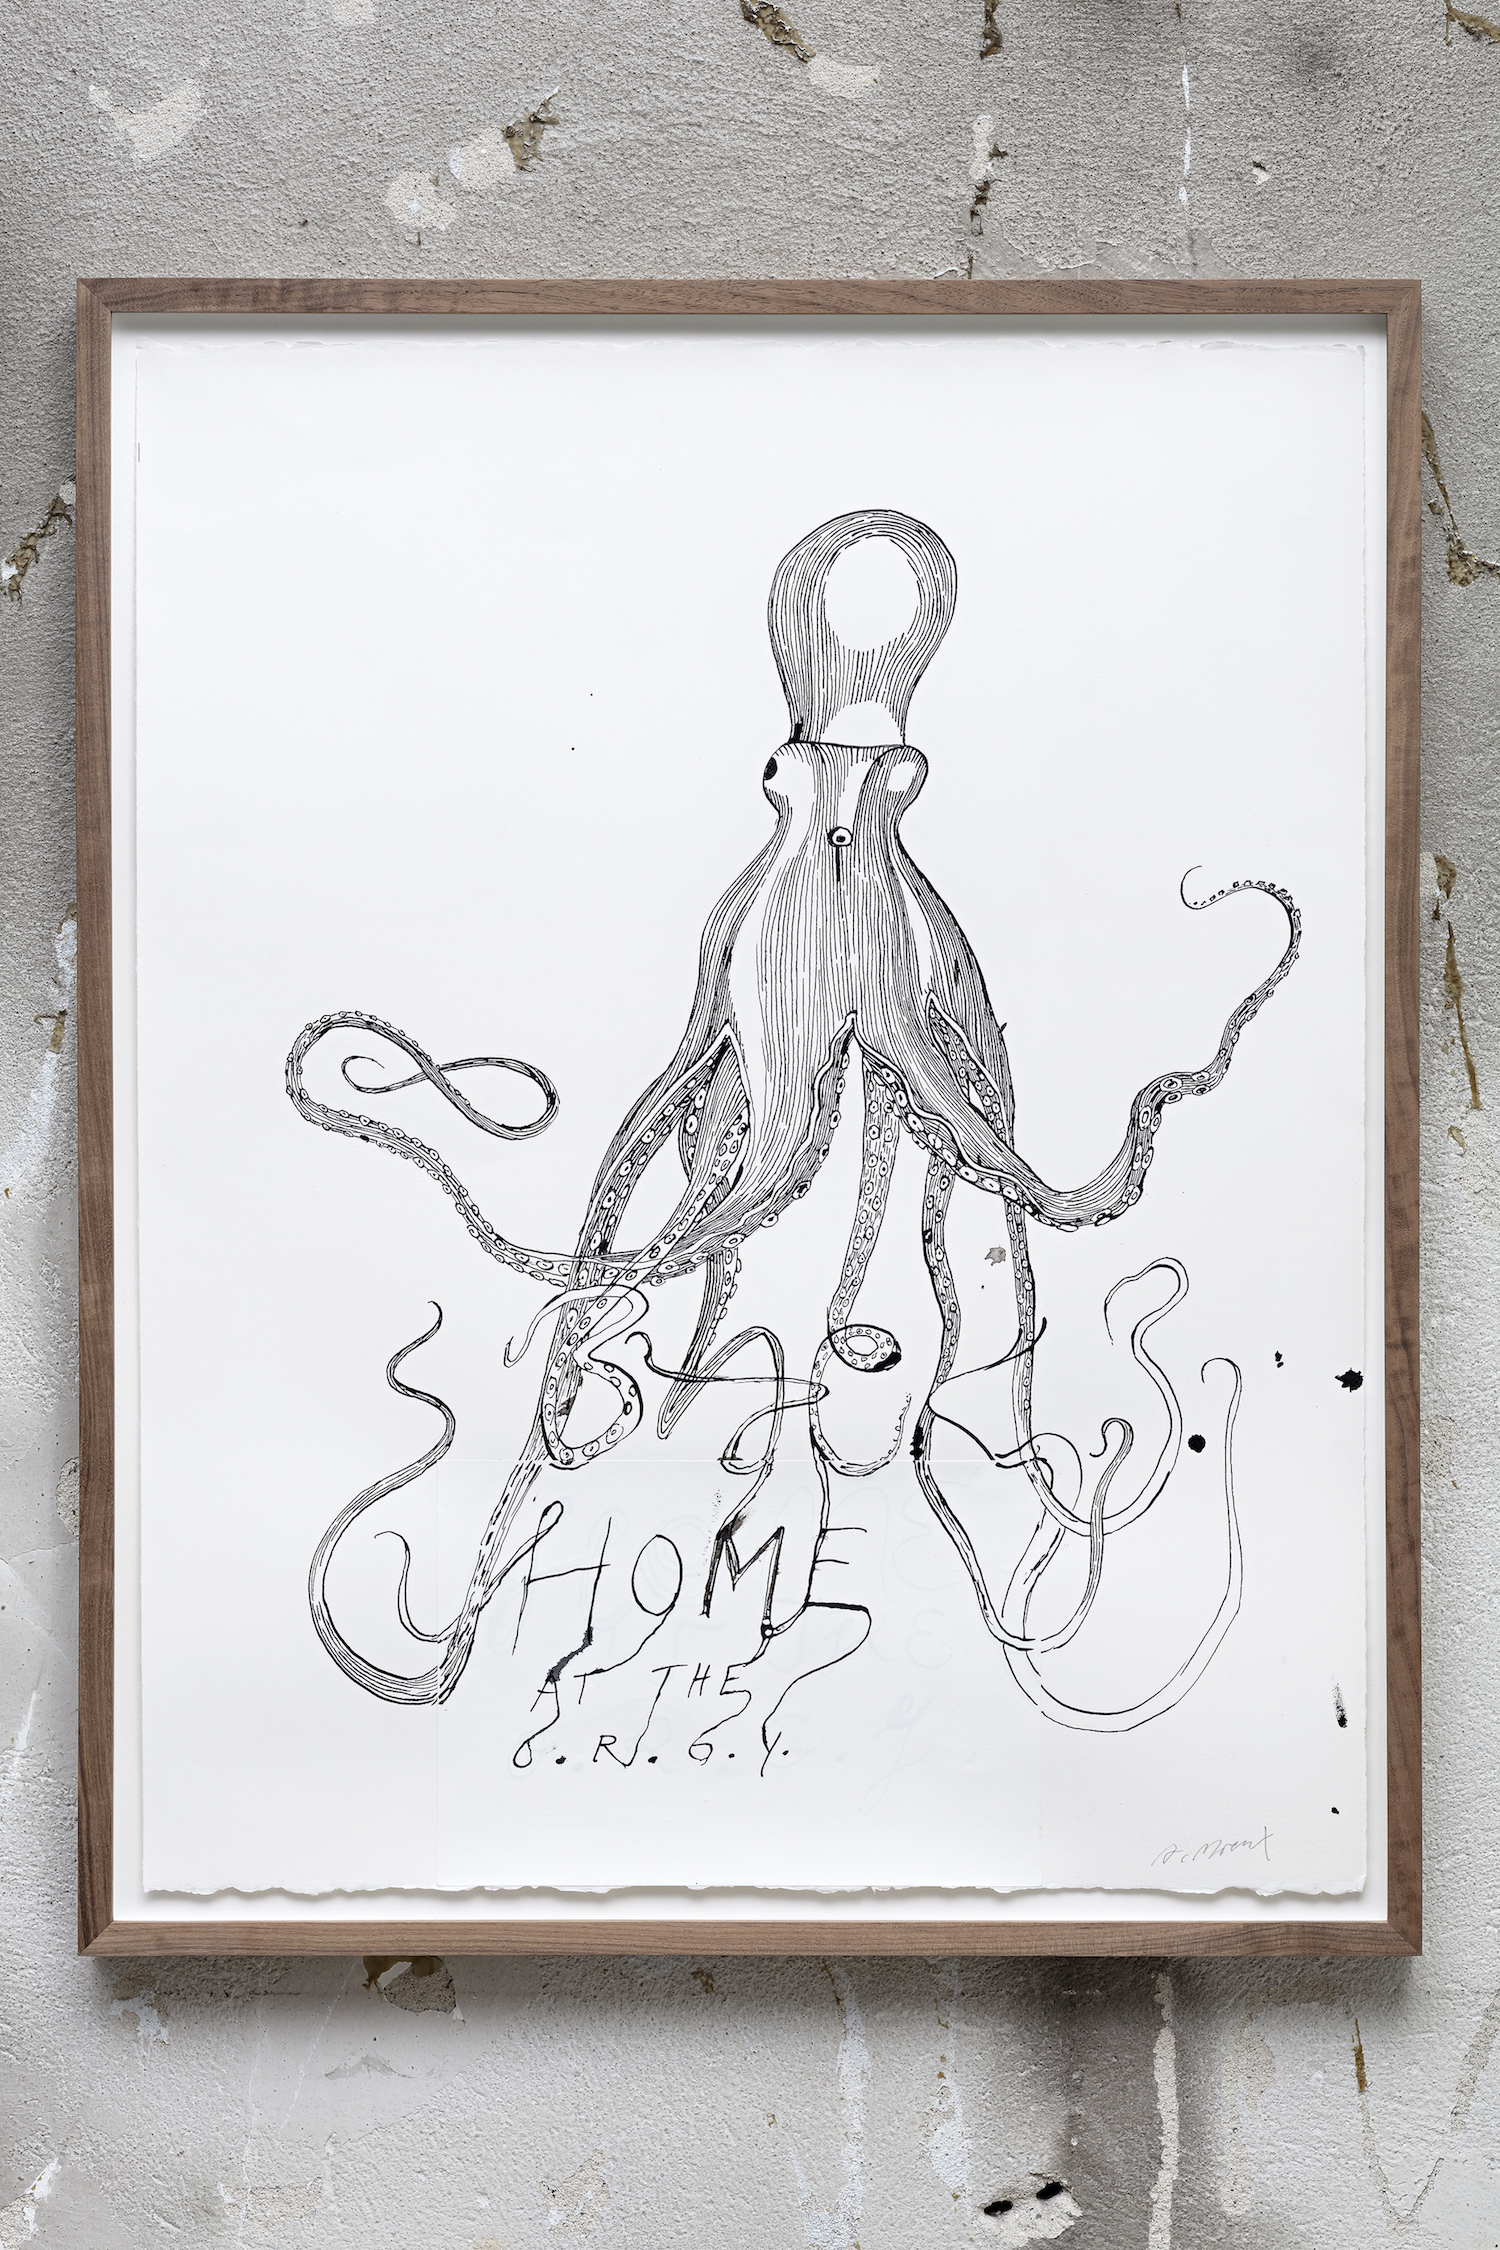 Agnes Moraux Back home at the O.R.G.Y 2017, Indian ink on paper, 66.5 x 52 cm